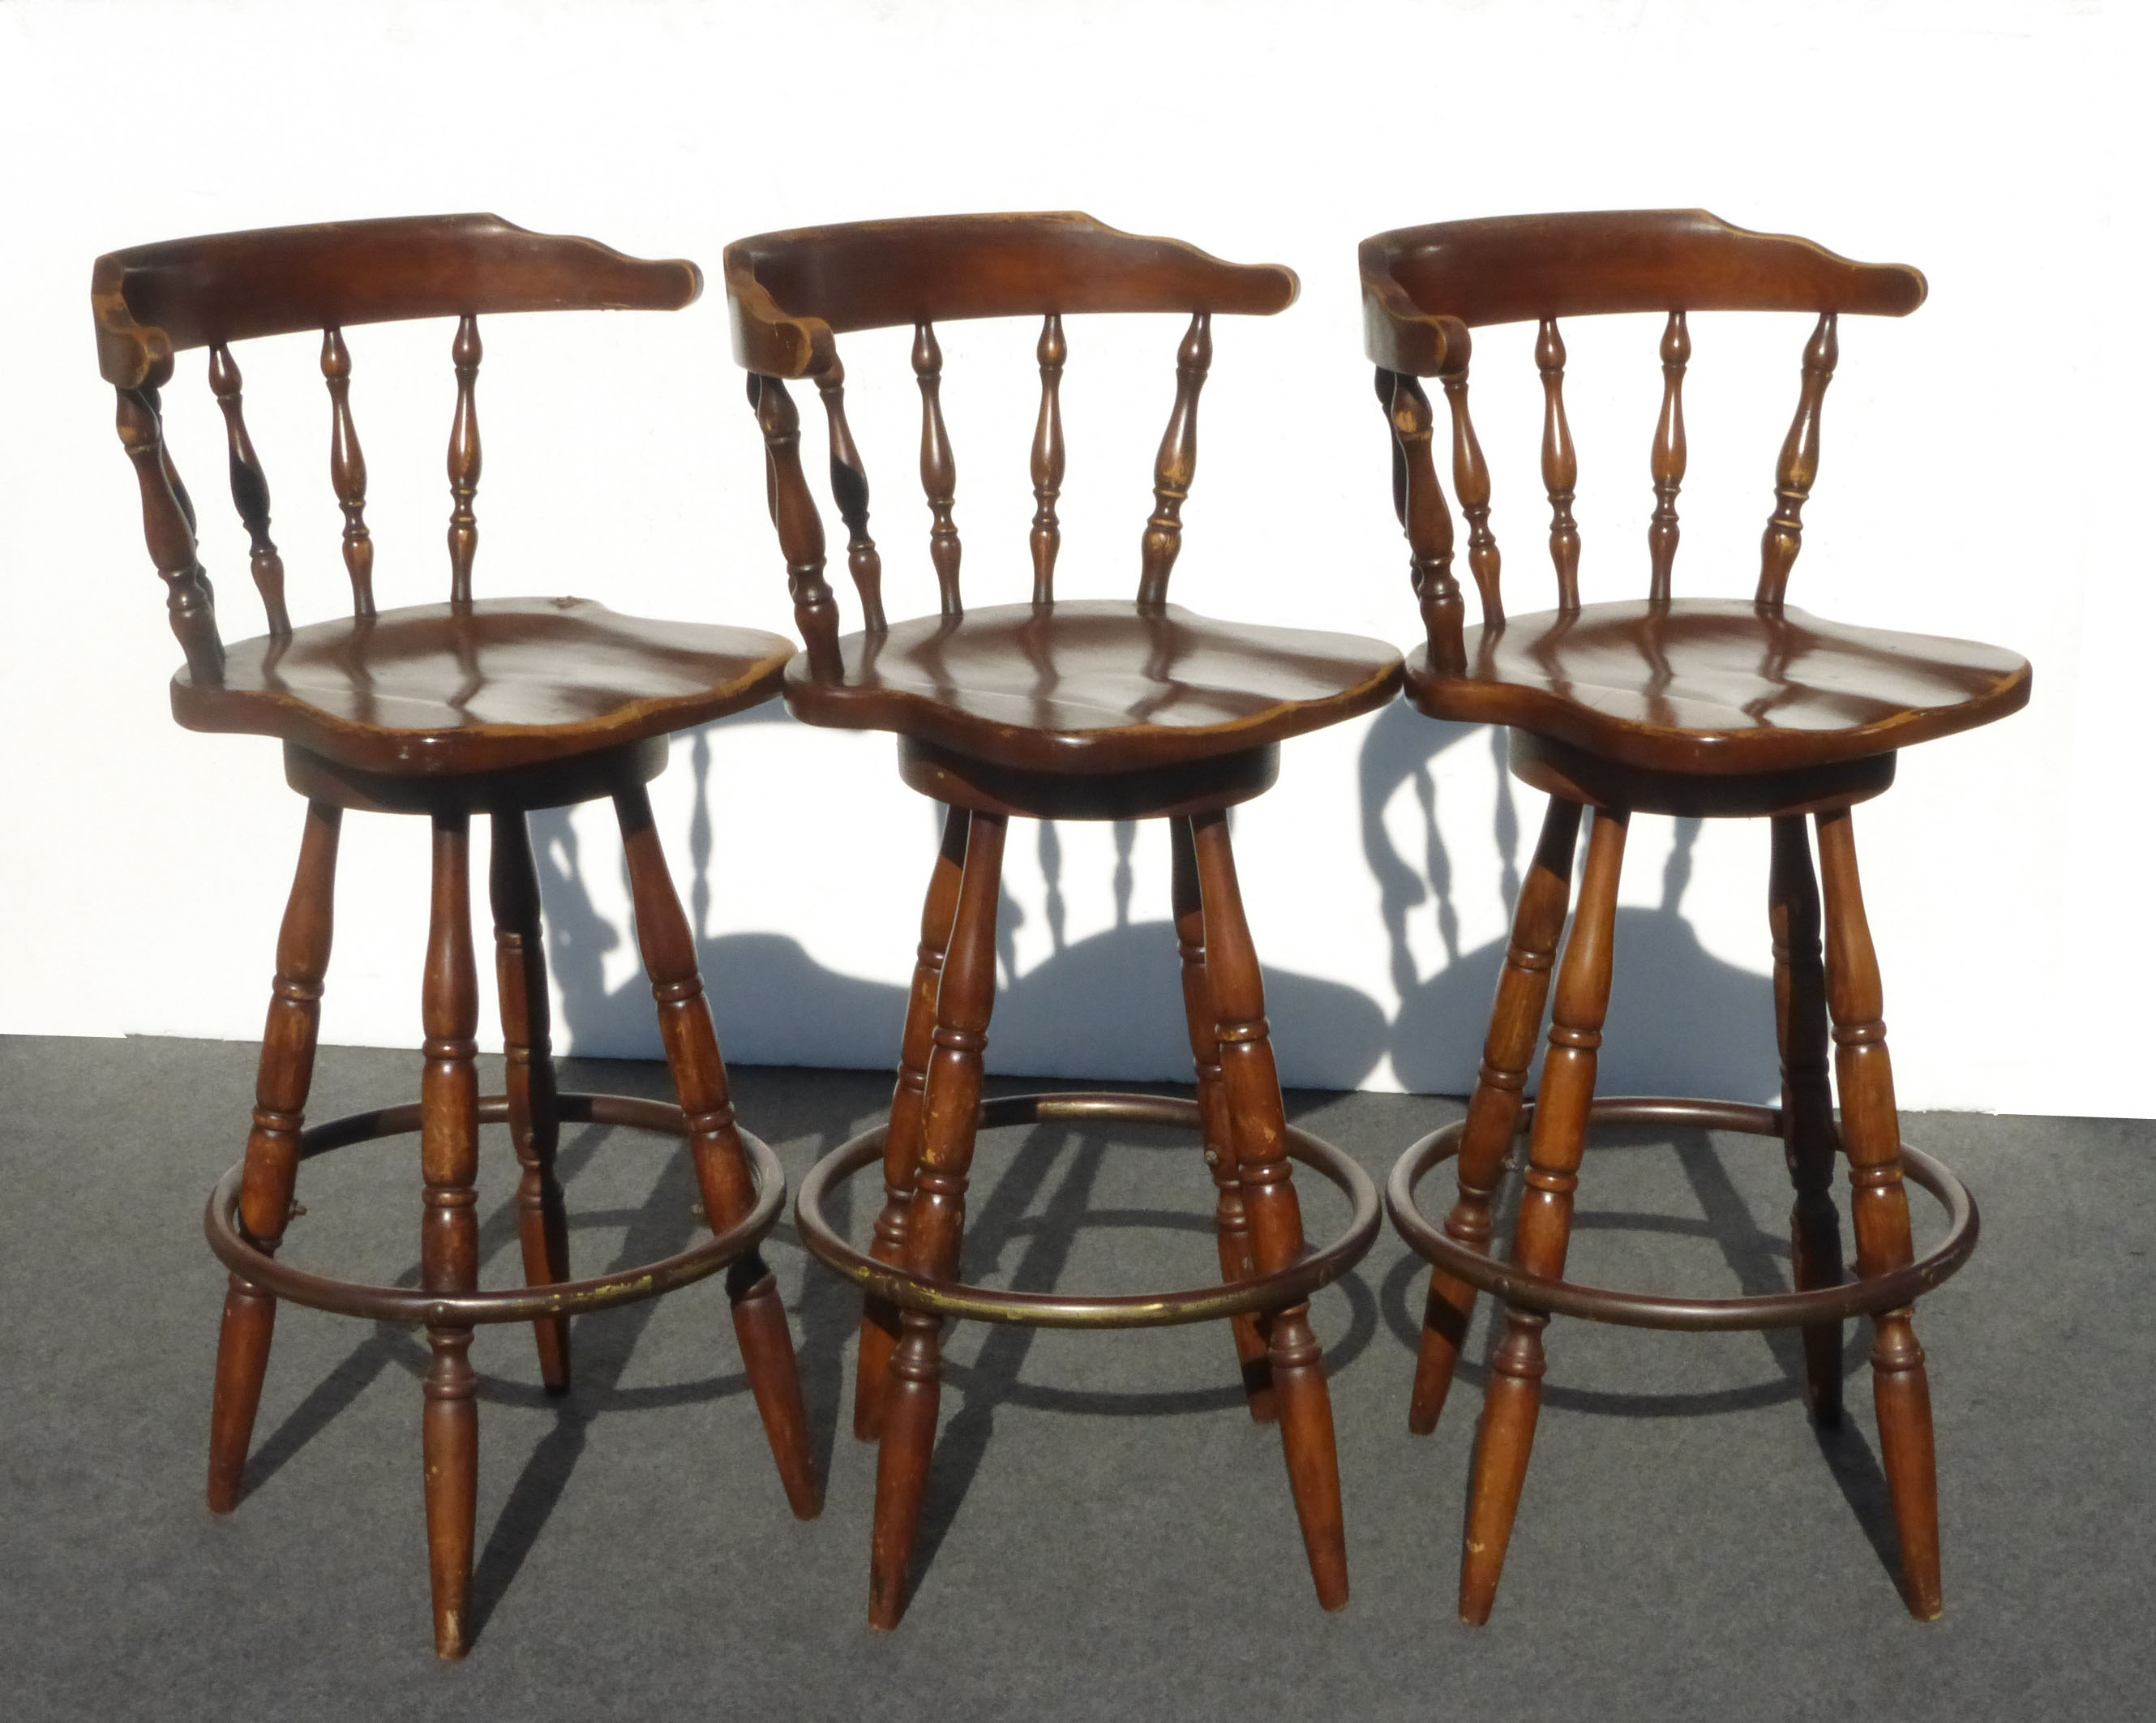 French Country Wood Swivel Bar Stools - Set of 3 - Image 3 of 11  sc 1 st  Chairish & French Country Wood Swivel Bar Stools - Set of 3 | Chairish islam-shia.org